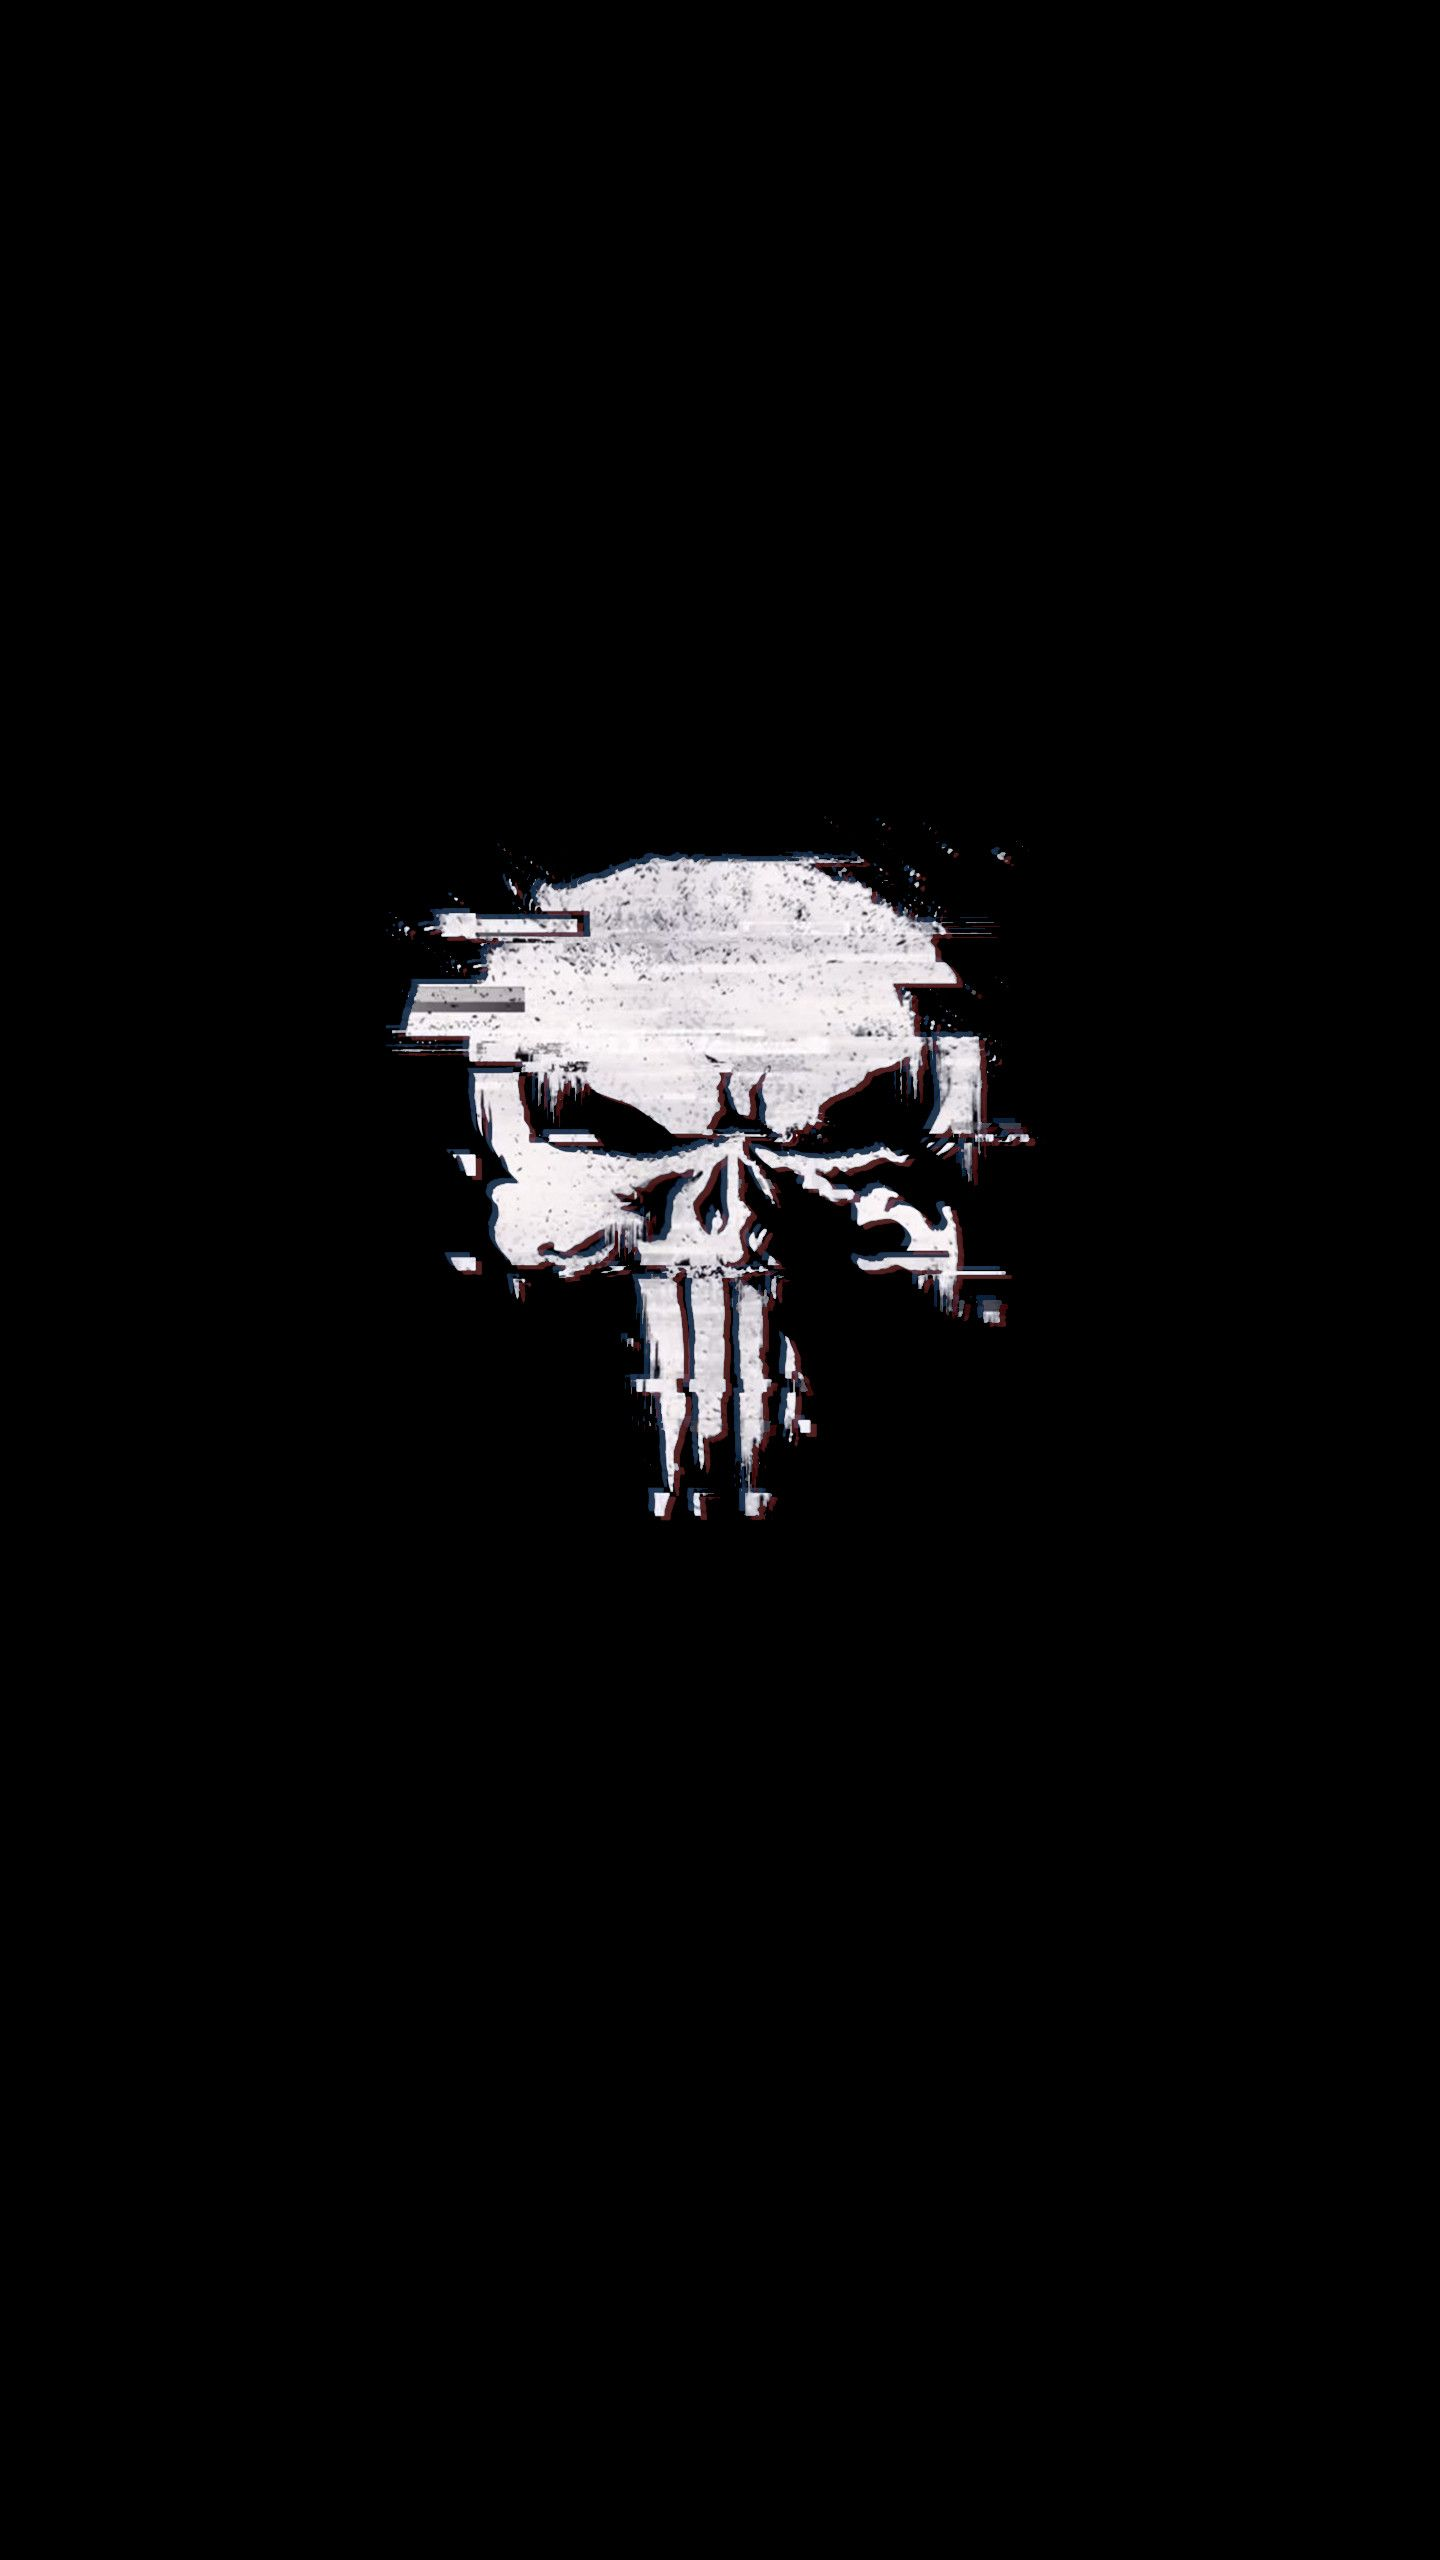 The Punisher Wallpaper Hd Iphone Punisher Artwork Punisher Art Punisher